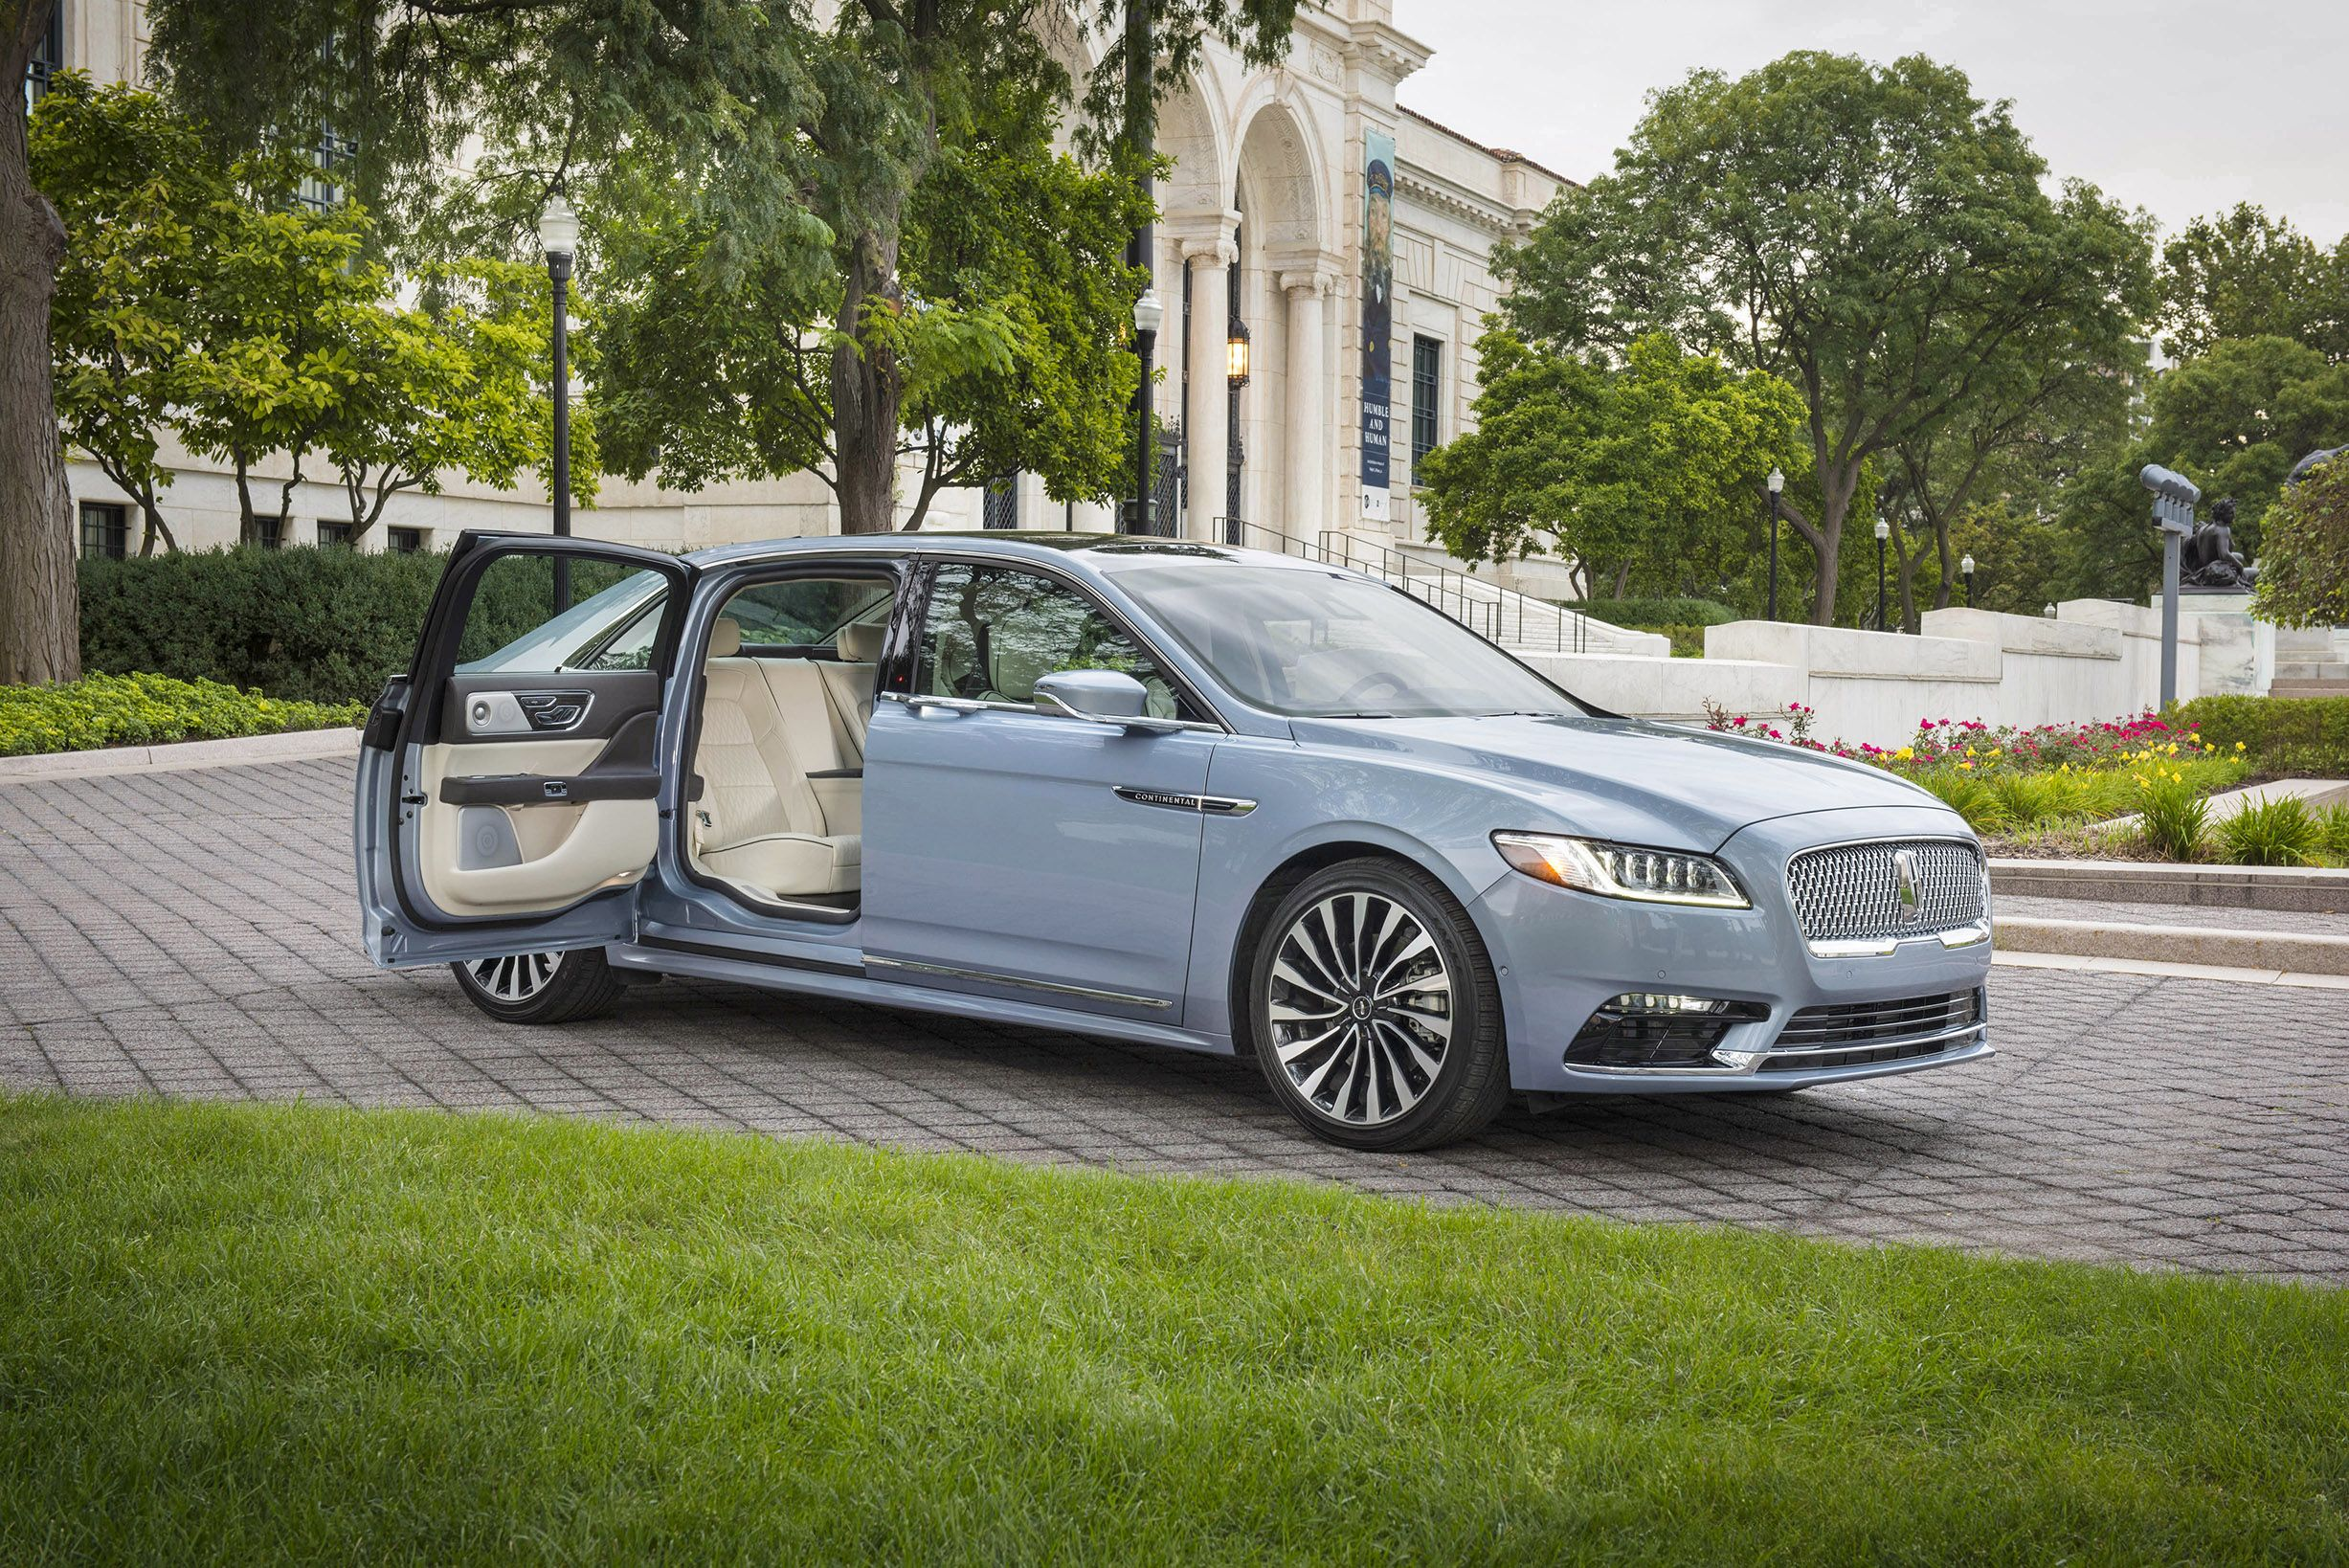 2020 Lincoln Continental With Suicide Doors Announced